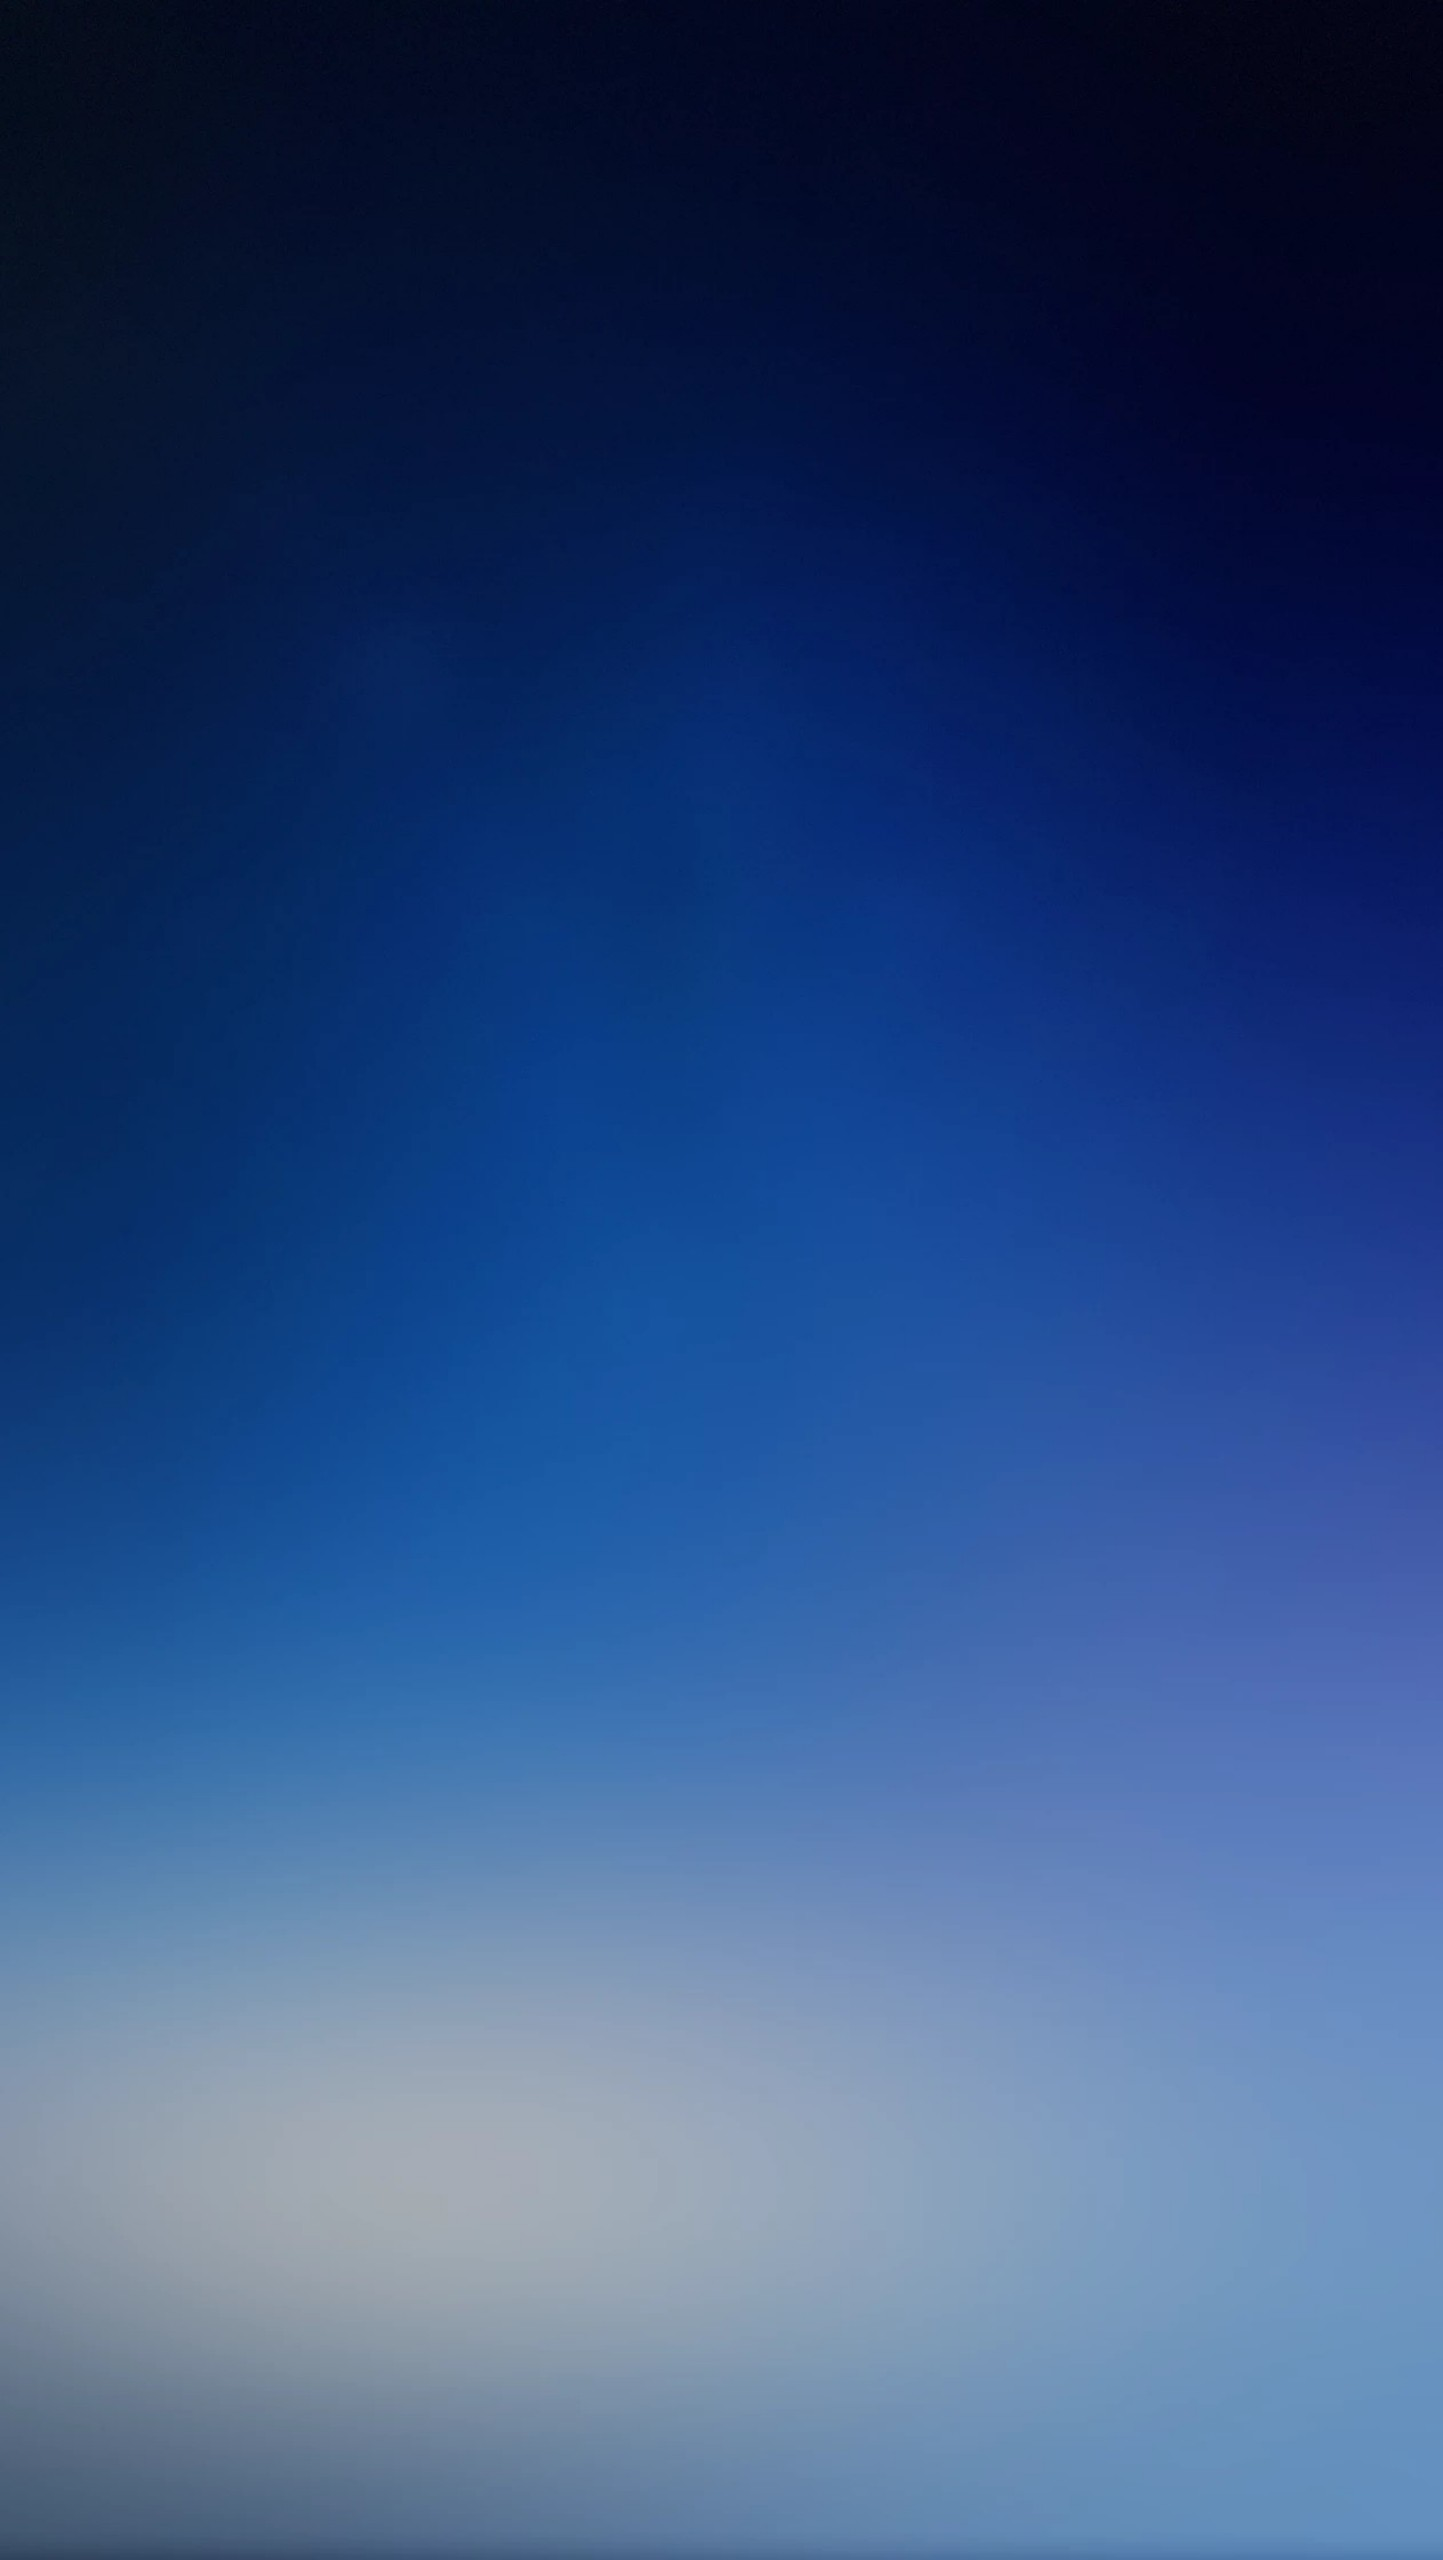 Ios 5 Stock Wallpapers 71 Images